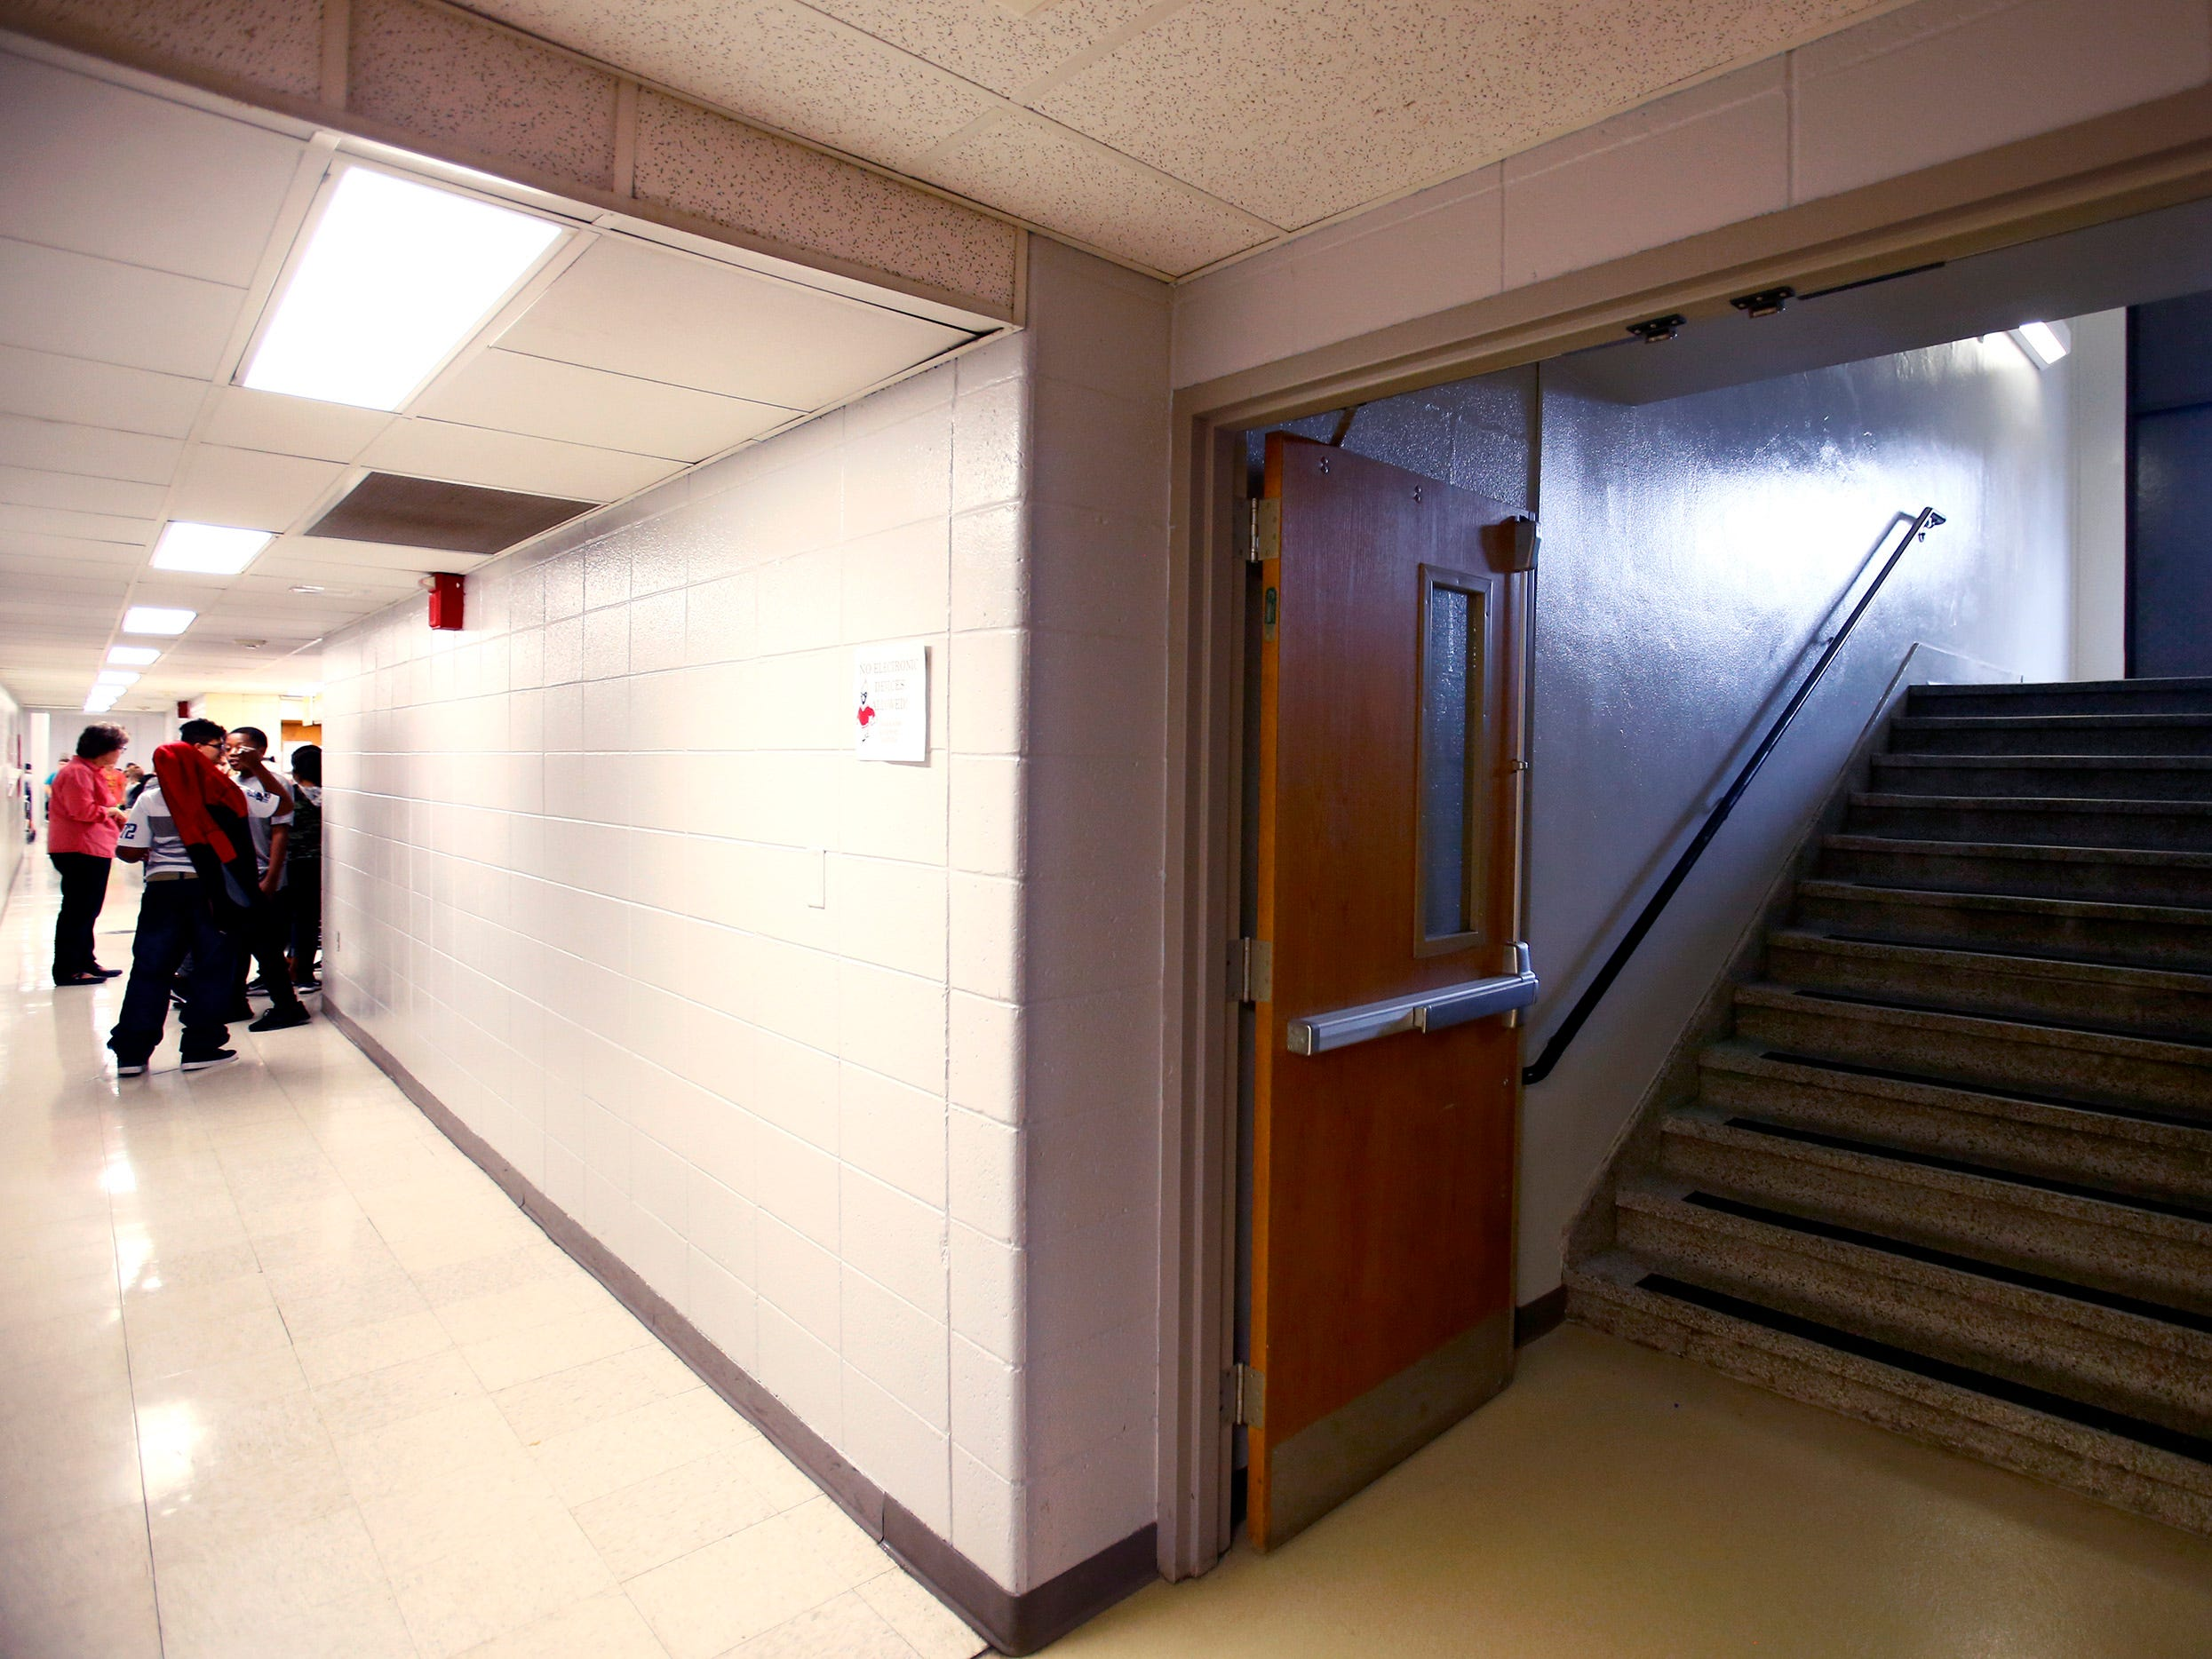 Les Paul students gather in a narrow hallway to the school's cafeteria. The upcoming referendum proposes to improve the cafeteria and its connecting hallways and stairwells.